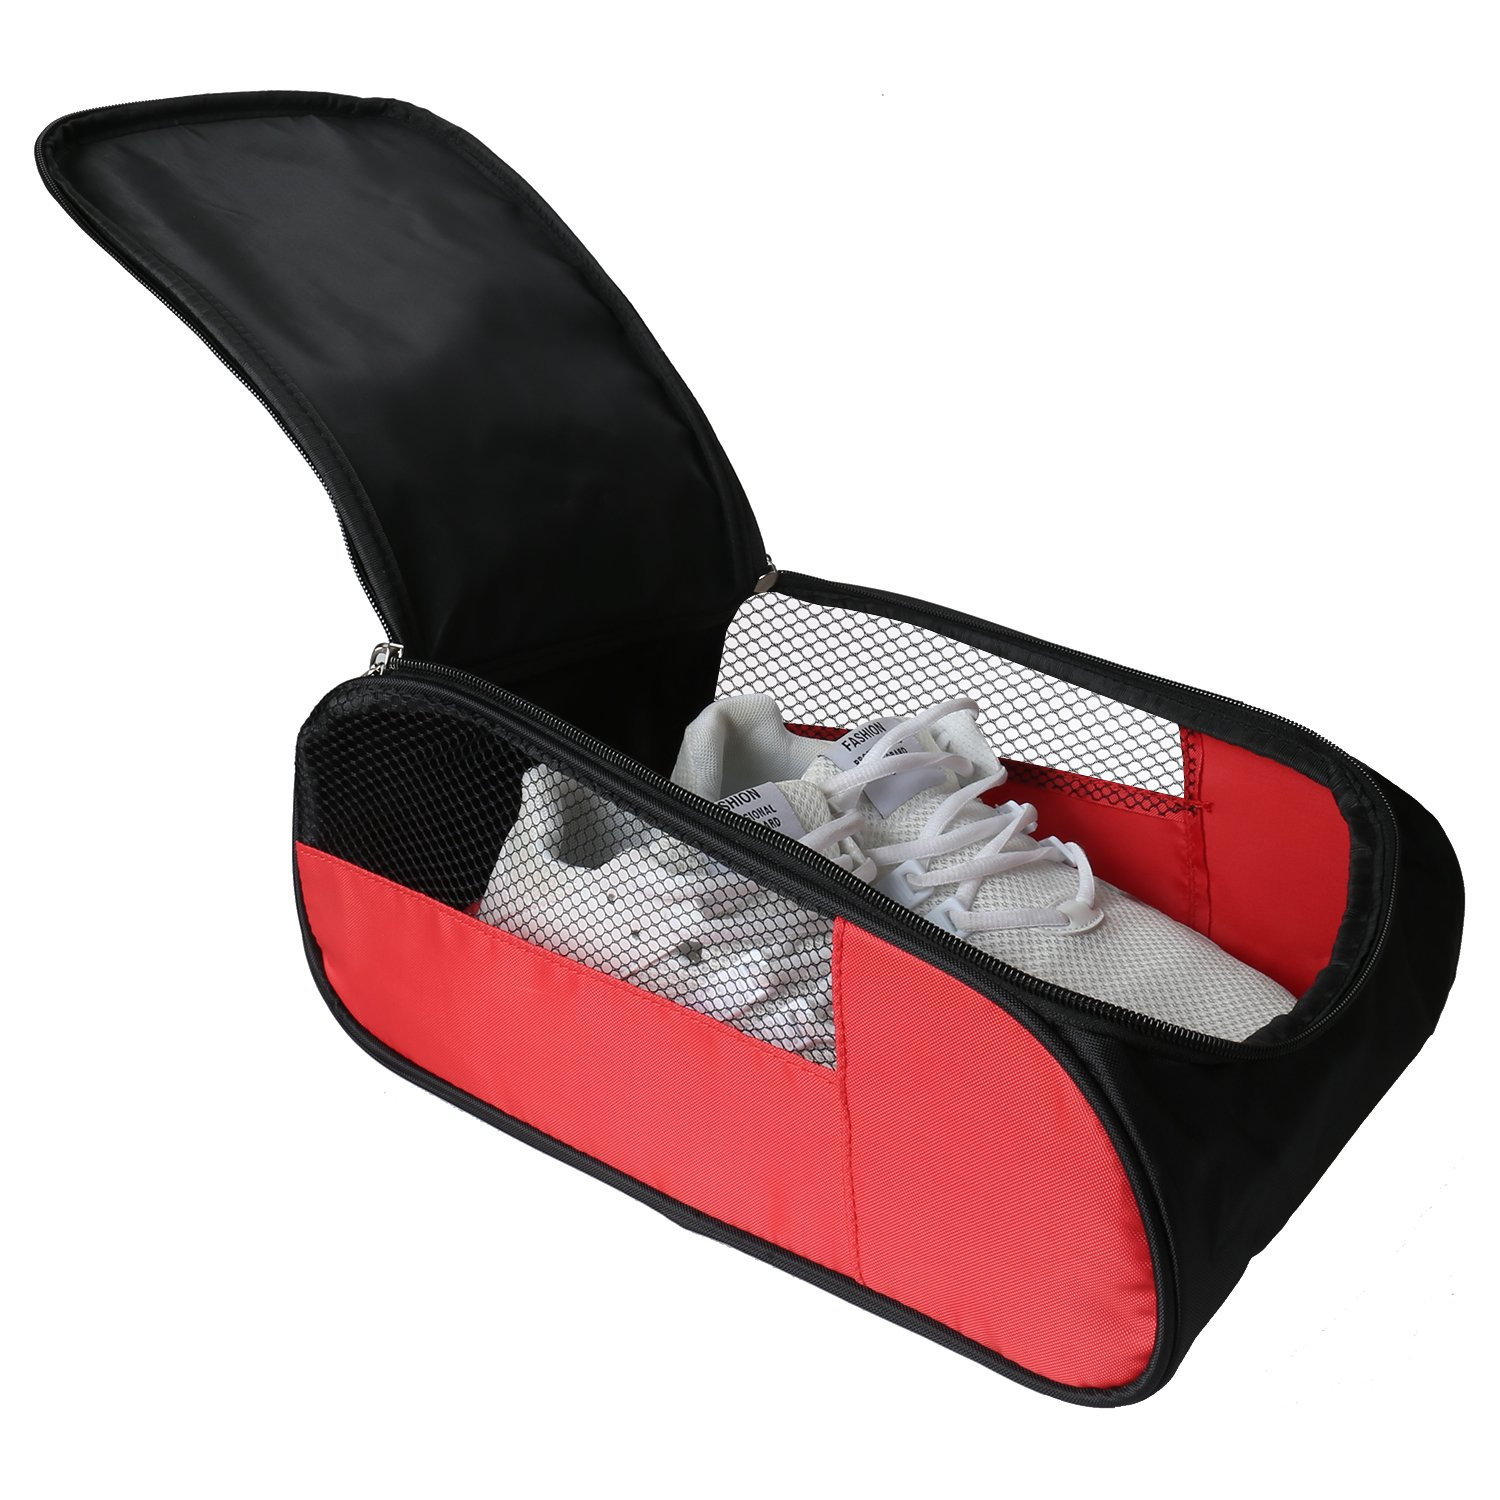 Outdoor Golf Shoes Bags Travel Shoes Bags Zippered Sport Shoes Bag (Red) by Getfitsoo